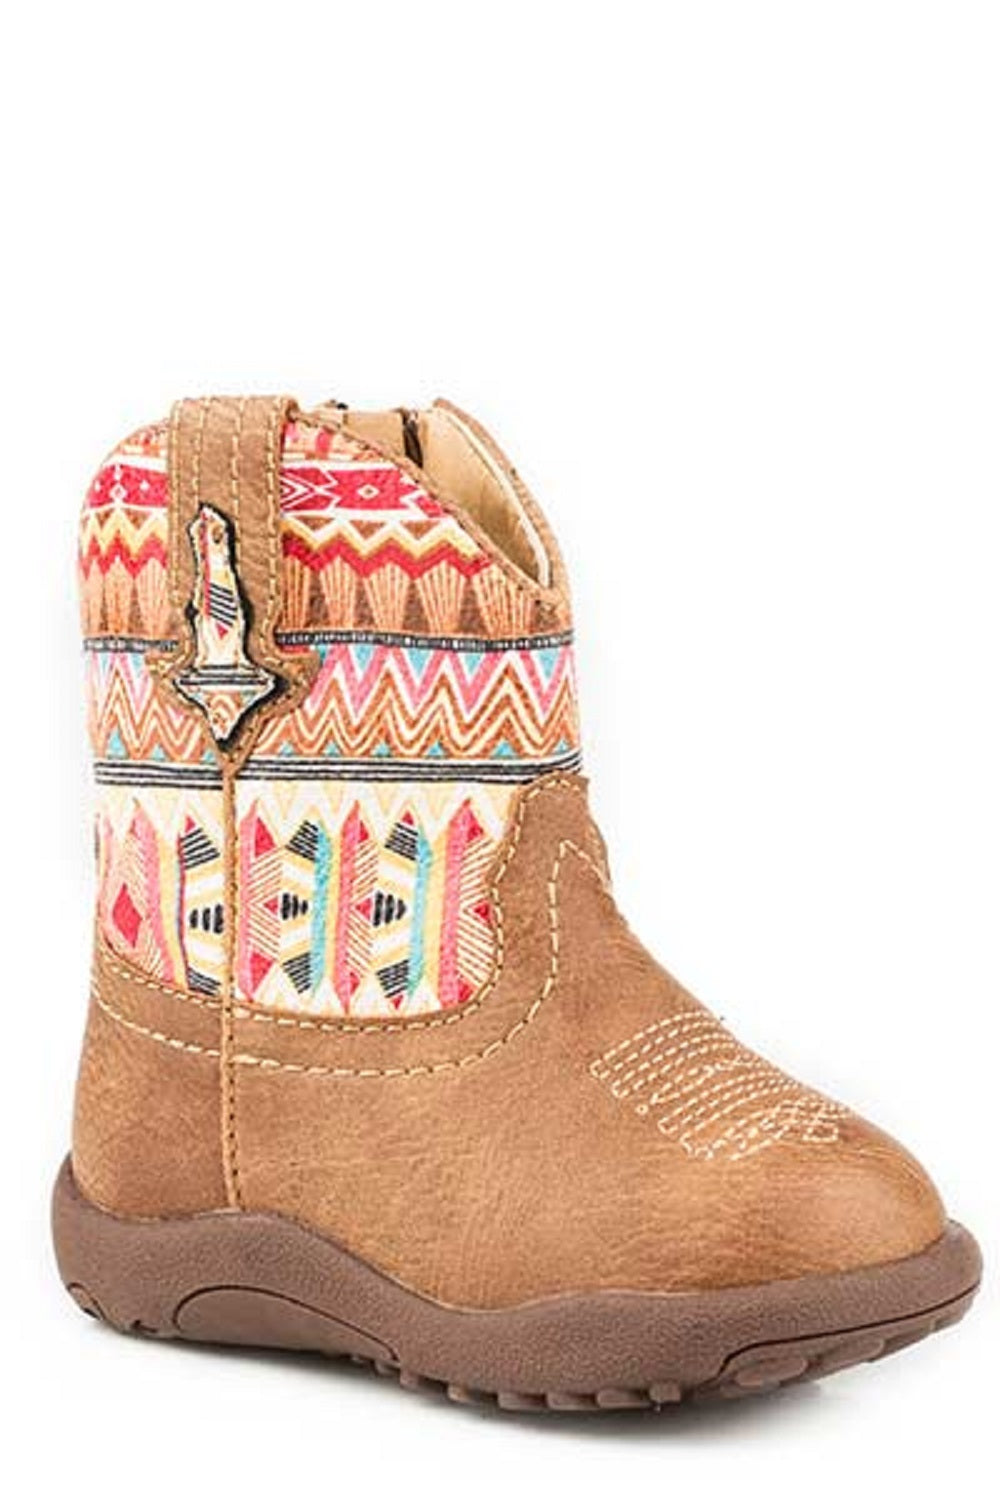 ROPER INFANT SQUARE TOE AZTEC SHOE - STYLE #09-016-1226-2032